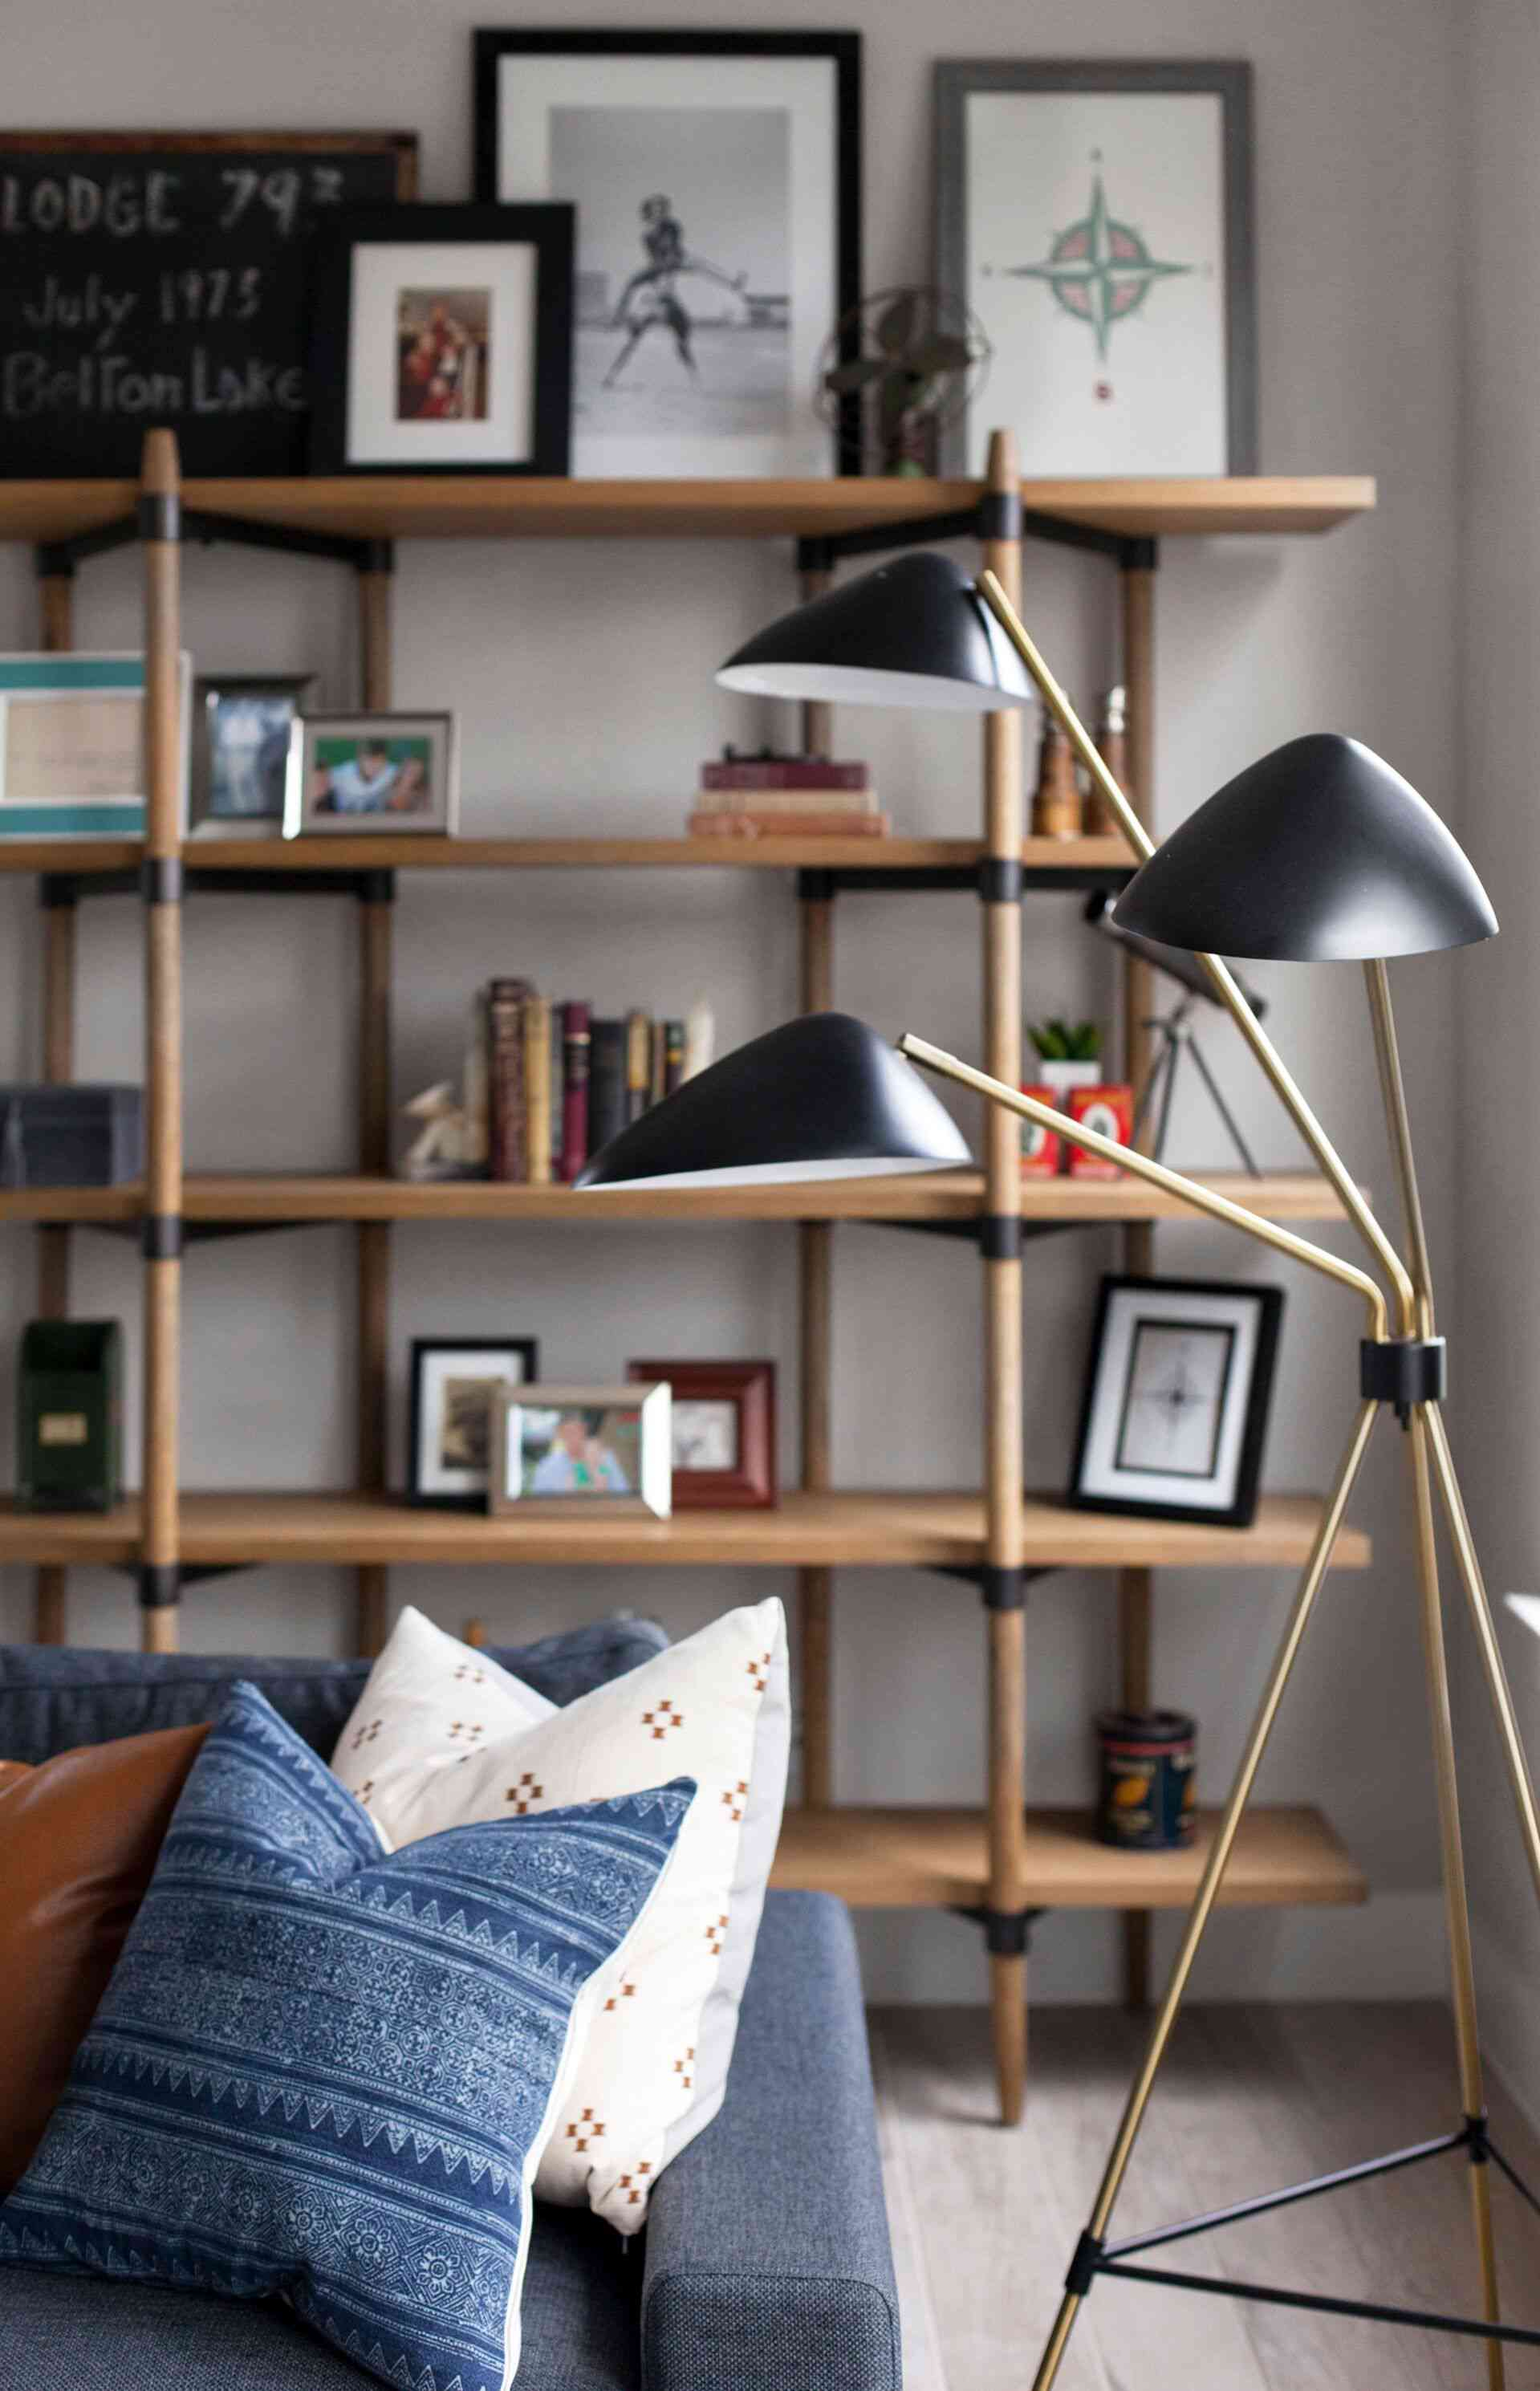 Mid-Century style living room shelves and light fixture